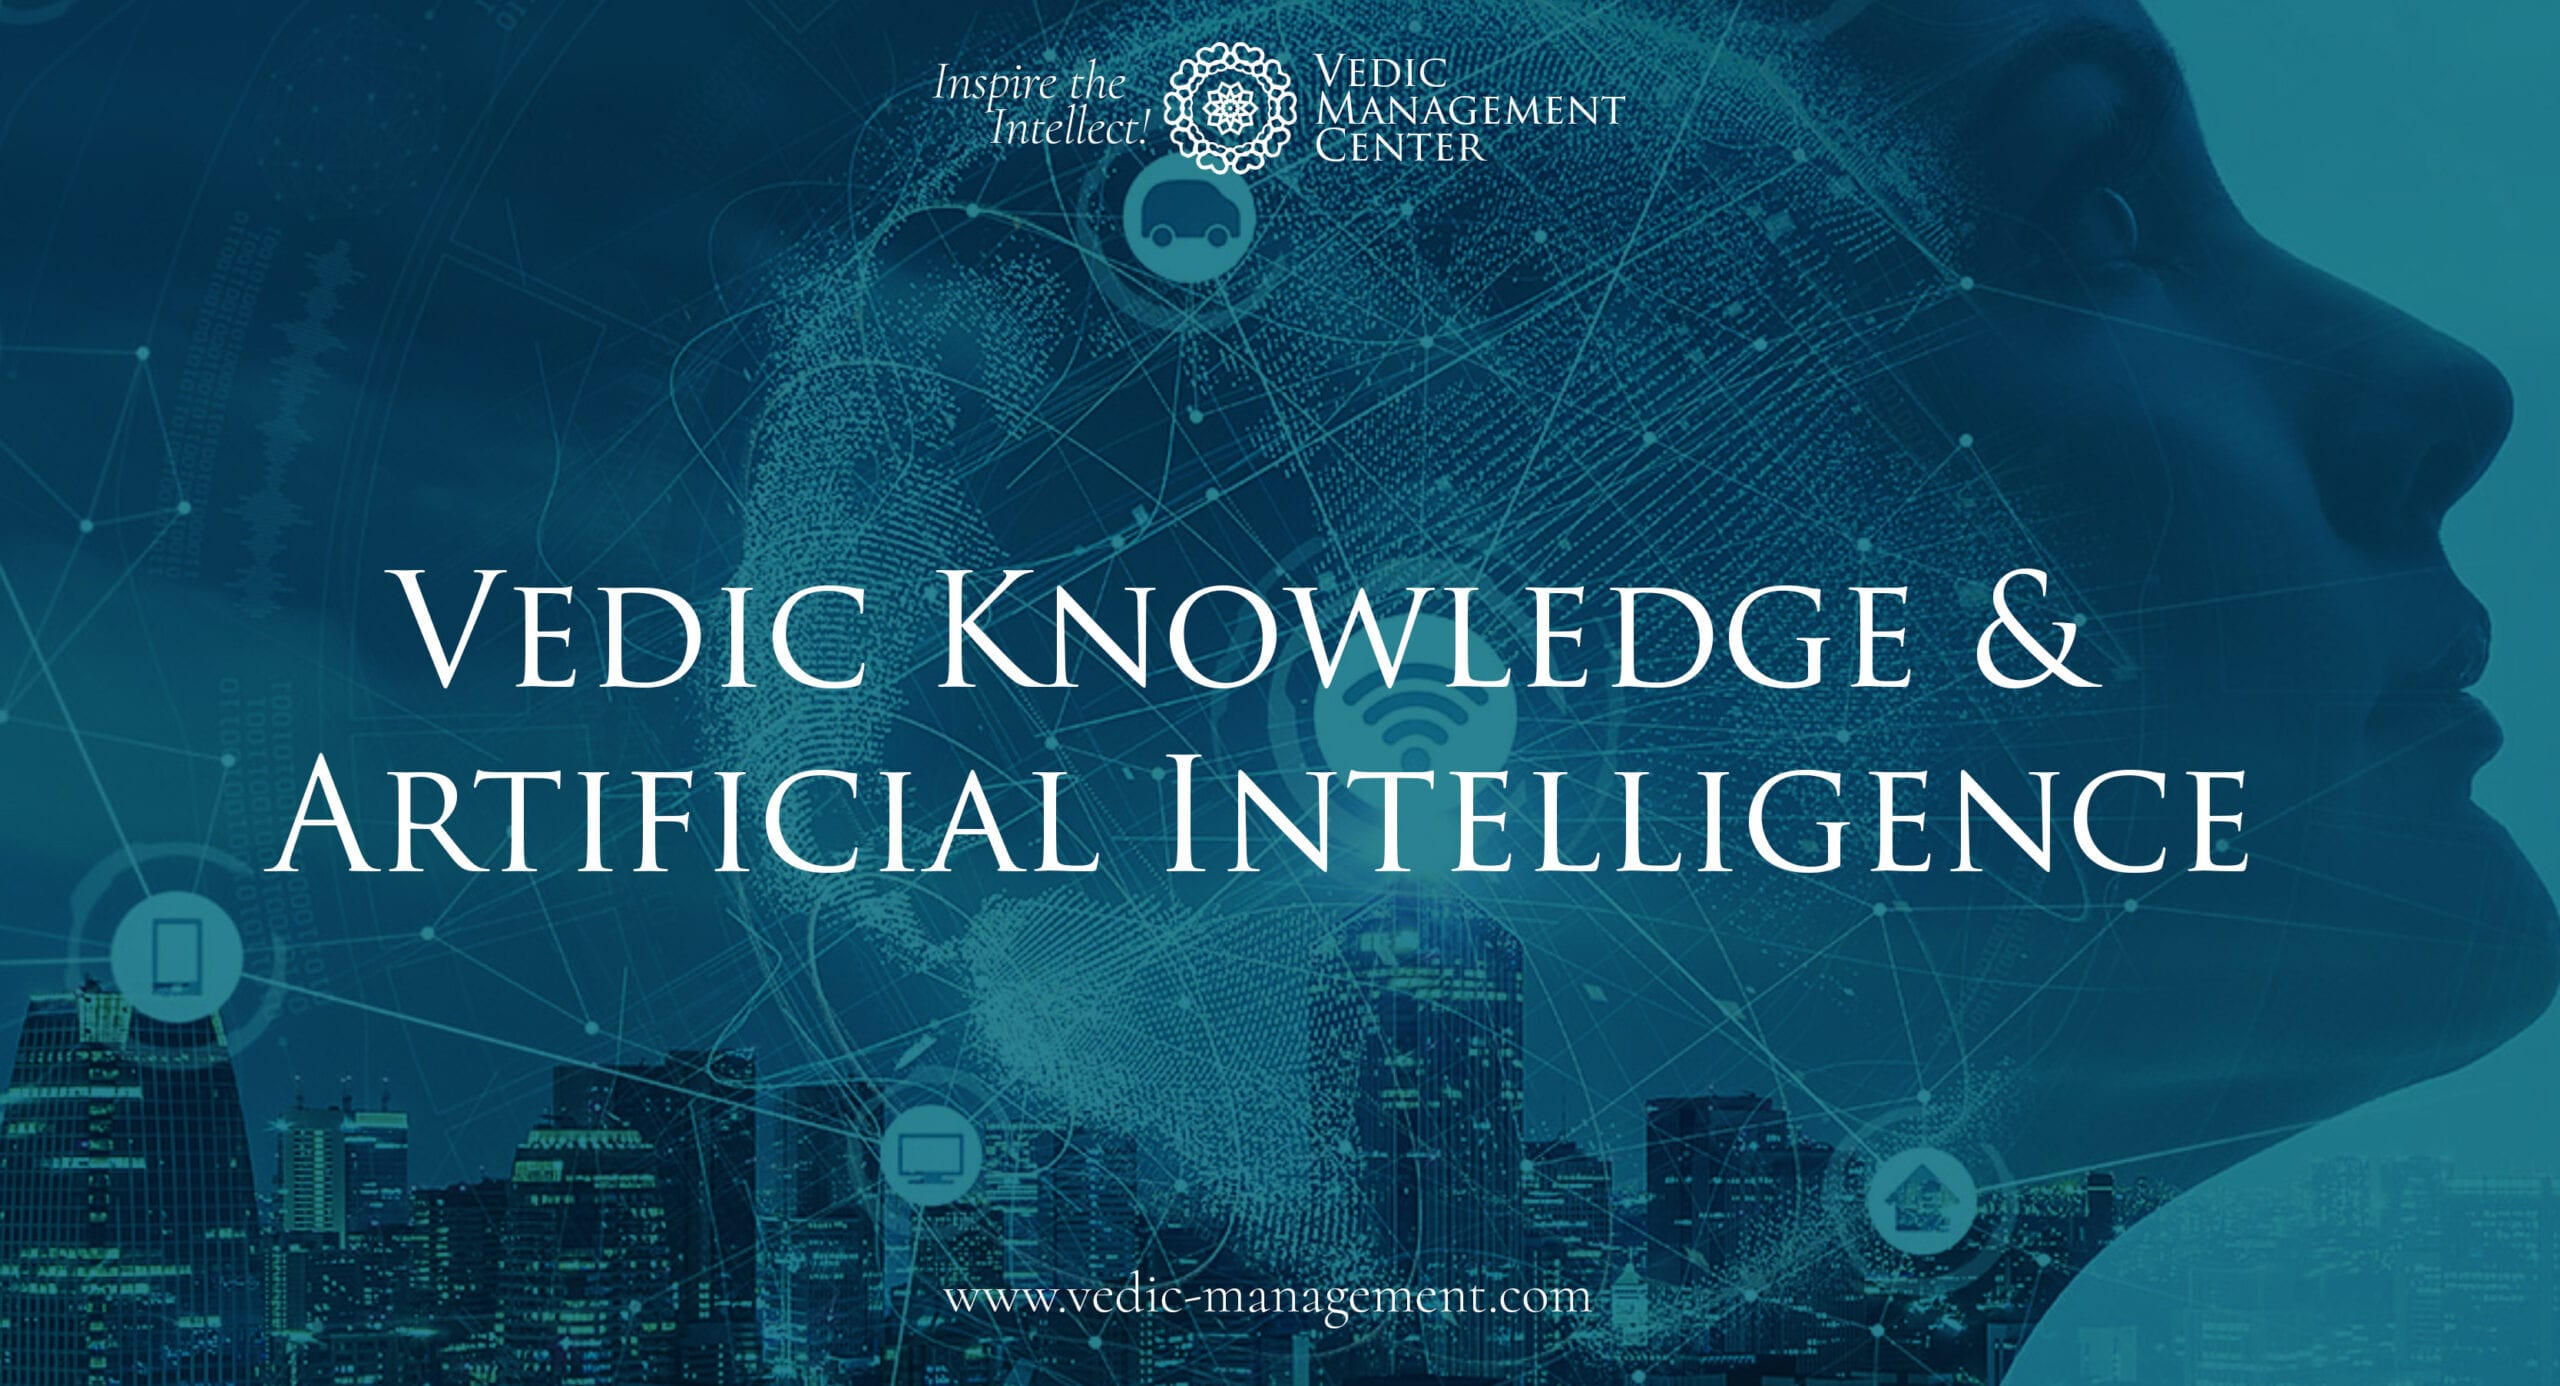 Vedic Knowledge & Artificial Intelligence